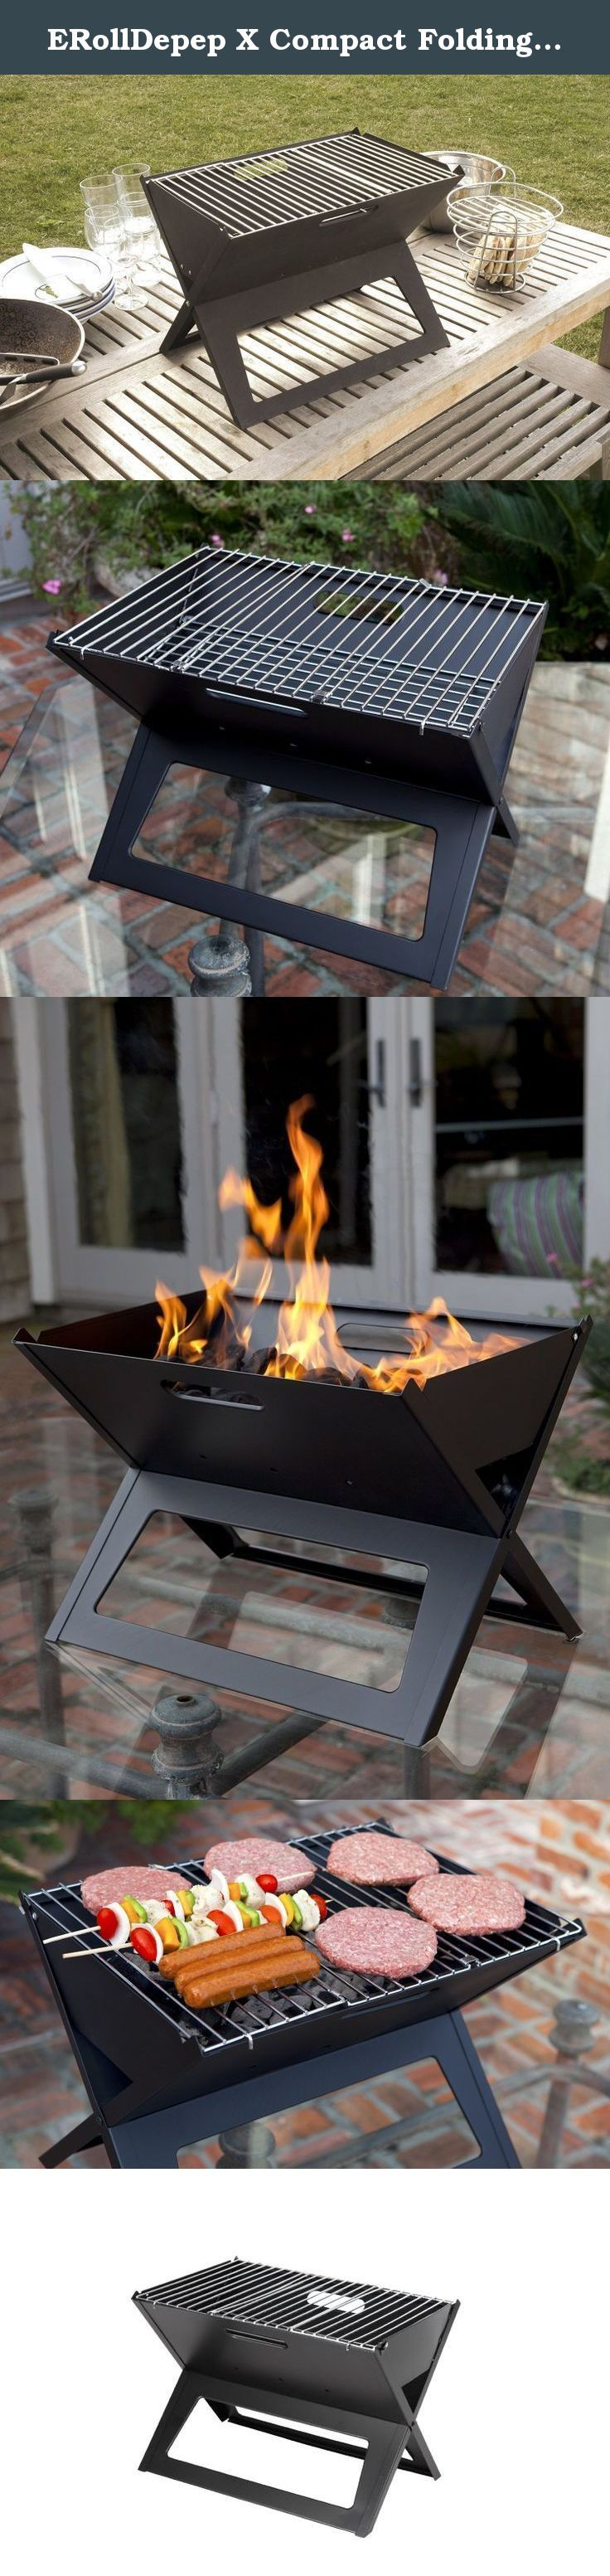 ERollDepep X Compact Folding Portable Charcoal Barbecue BBQ Grill Outdoor Notebook Charcoal Grill Original Folding Charcoal BBQ Grill Made from Stainless Steel. We are pleased to offer the finest in British design and quality in the Hot Spot Notebook Charcoal Grill. The Notebook Grill is the perfect portable charcoal grill. The clever design allows this unit to stand 14.18-inch for use and then fold flat to one inch in seconds. Constructed of high heat resistant painted steel, this sturdy...